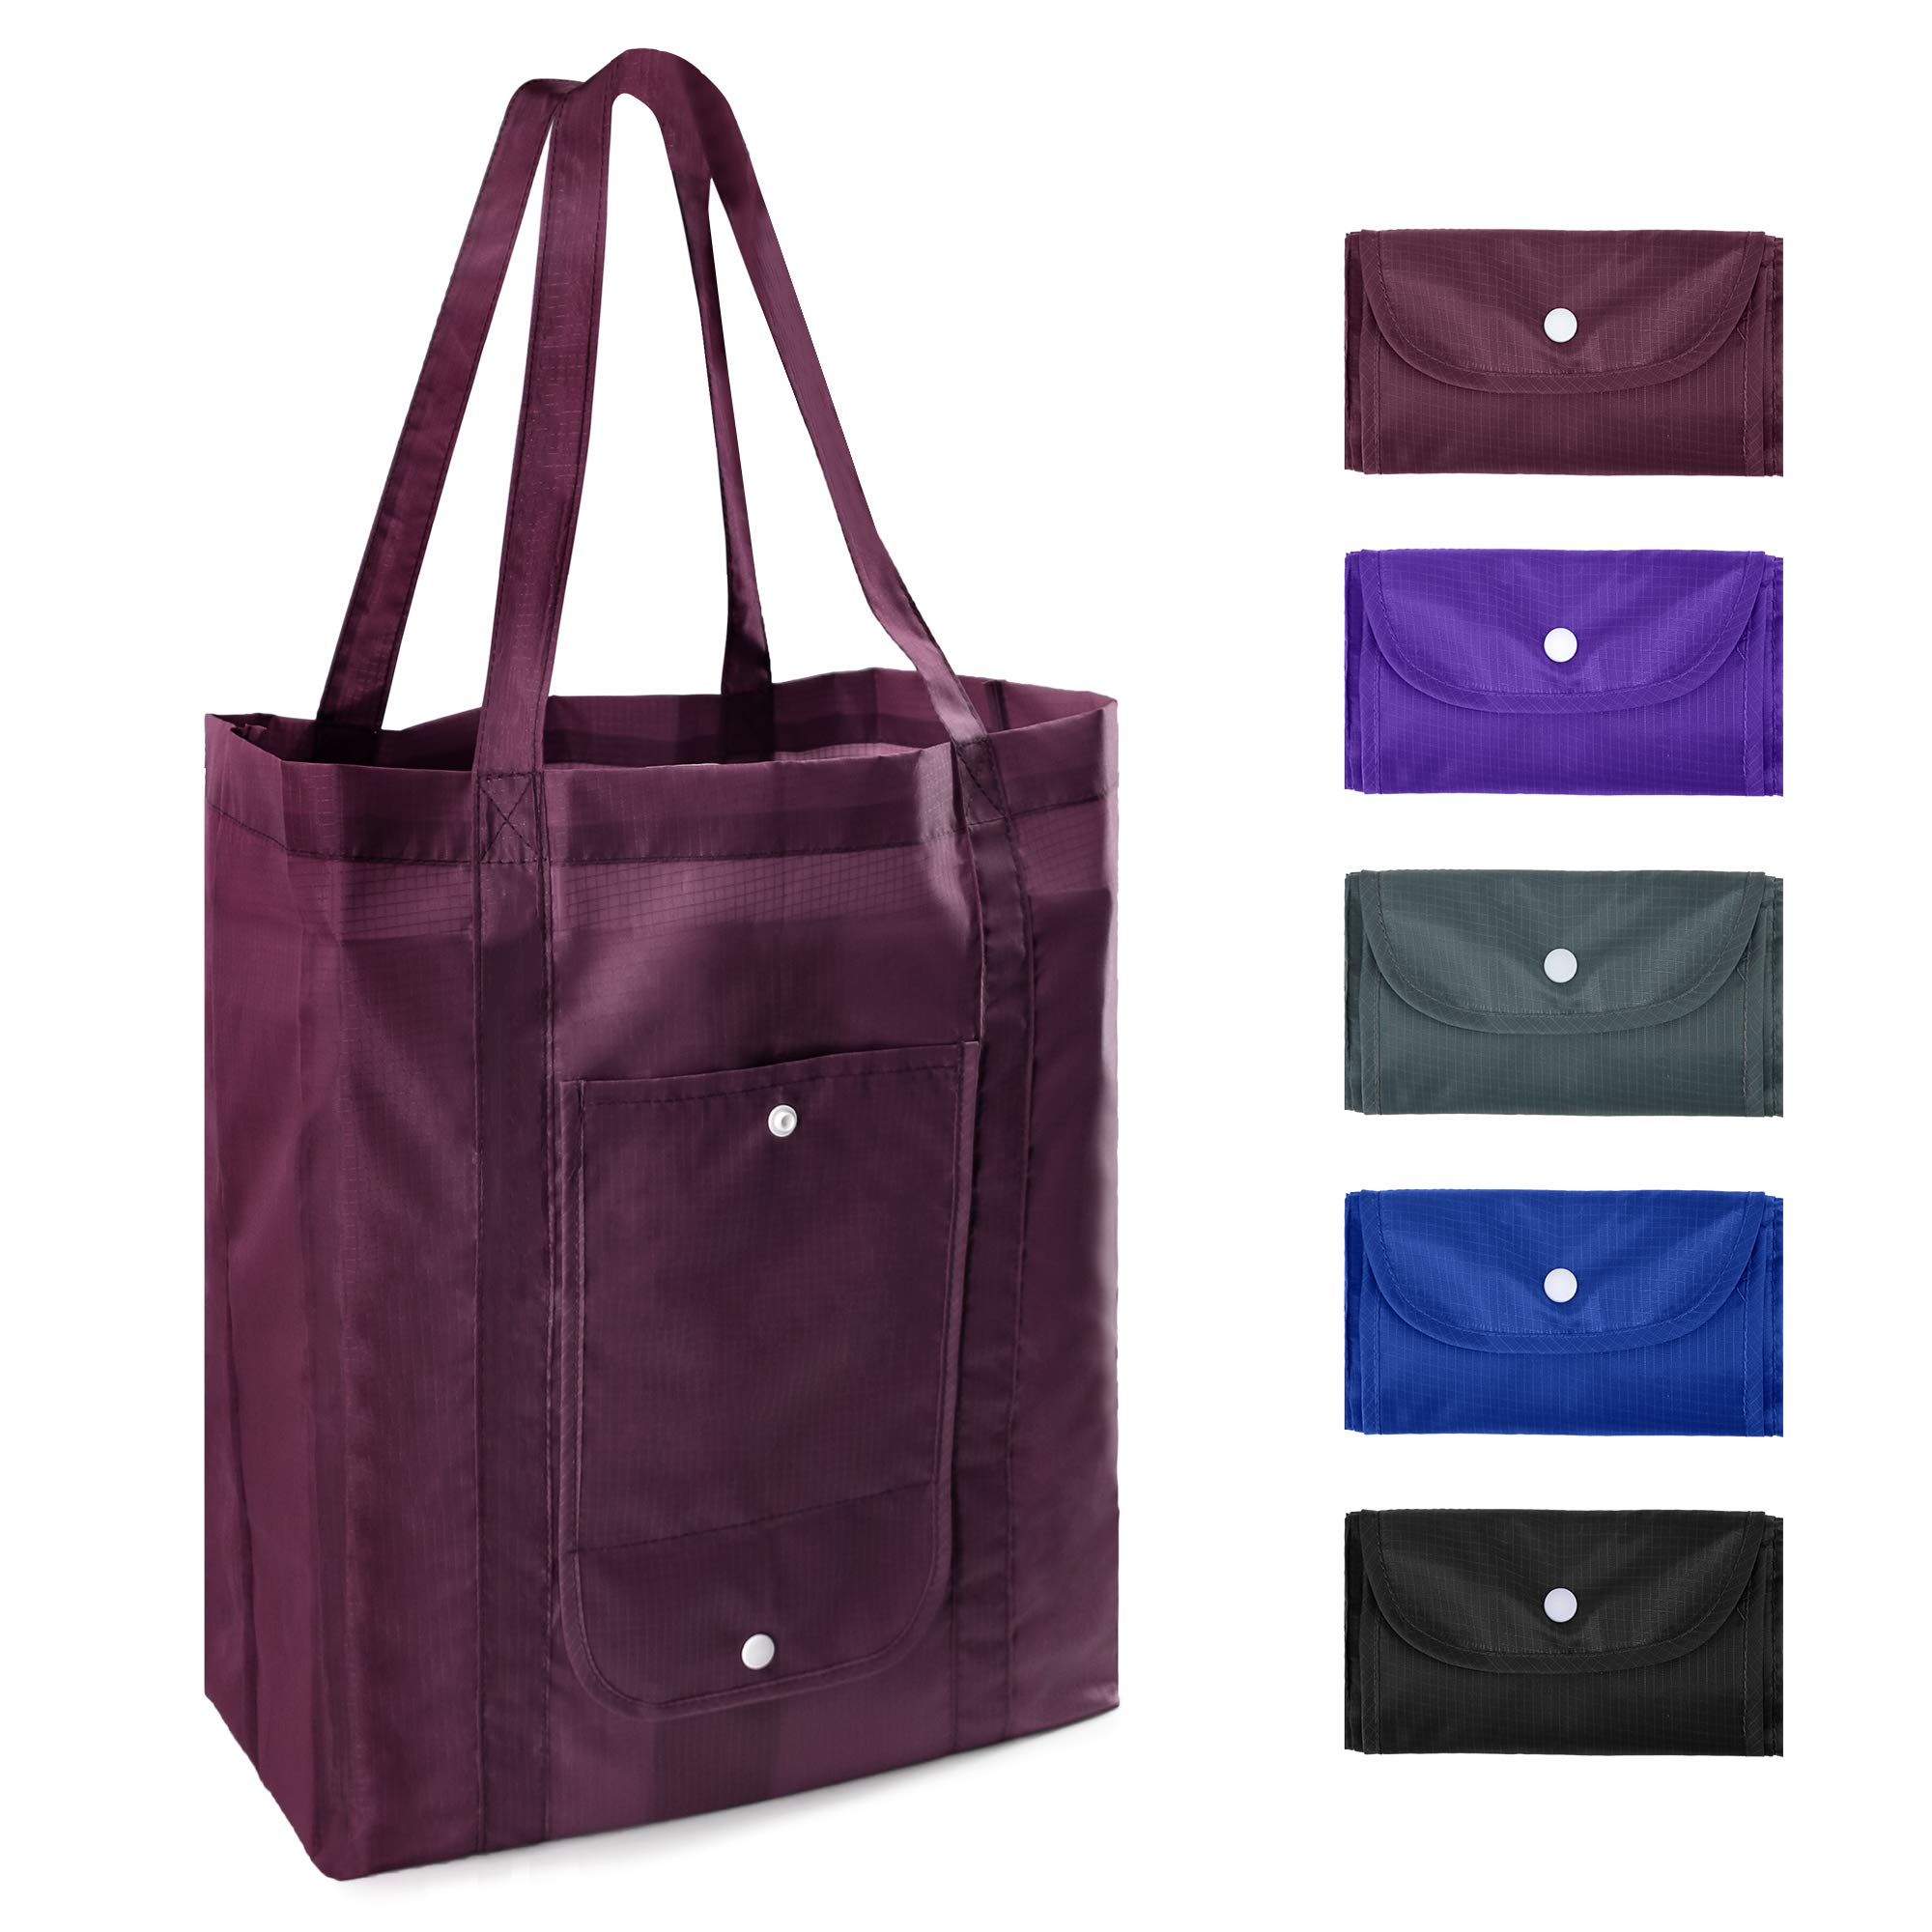 Reusable Grocery Tote Bagswith Pocket Bulk 5 Pack XLarge 50LBS FoldableReusable Shopping Bags with Reinforeced Long Handles Machine Washable Ripstop Polyester Burgandy Purple Black Royal Grey